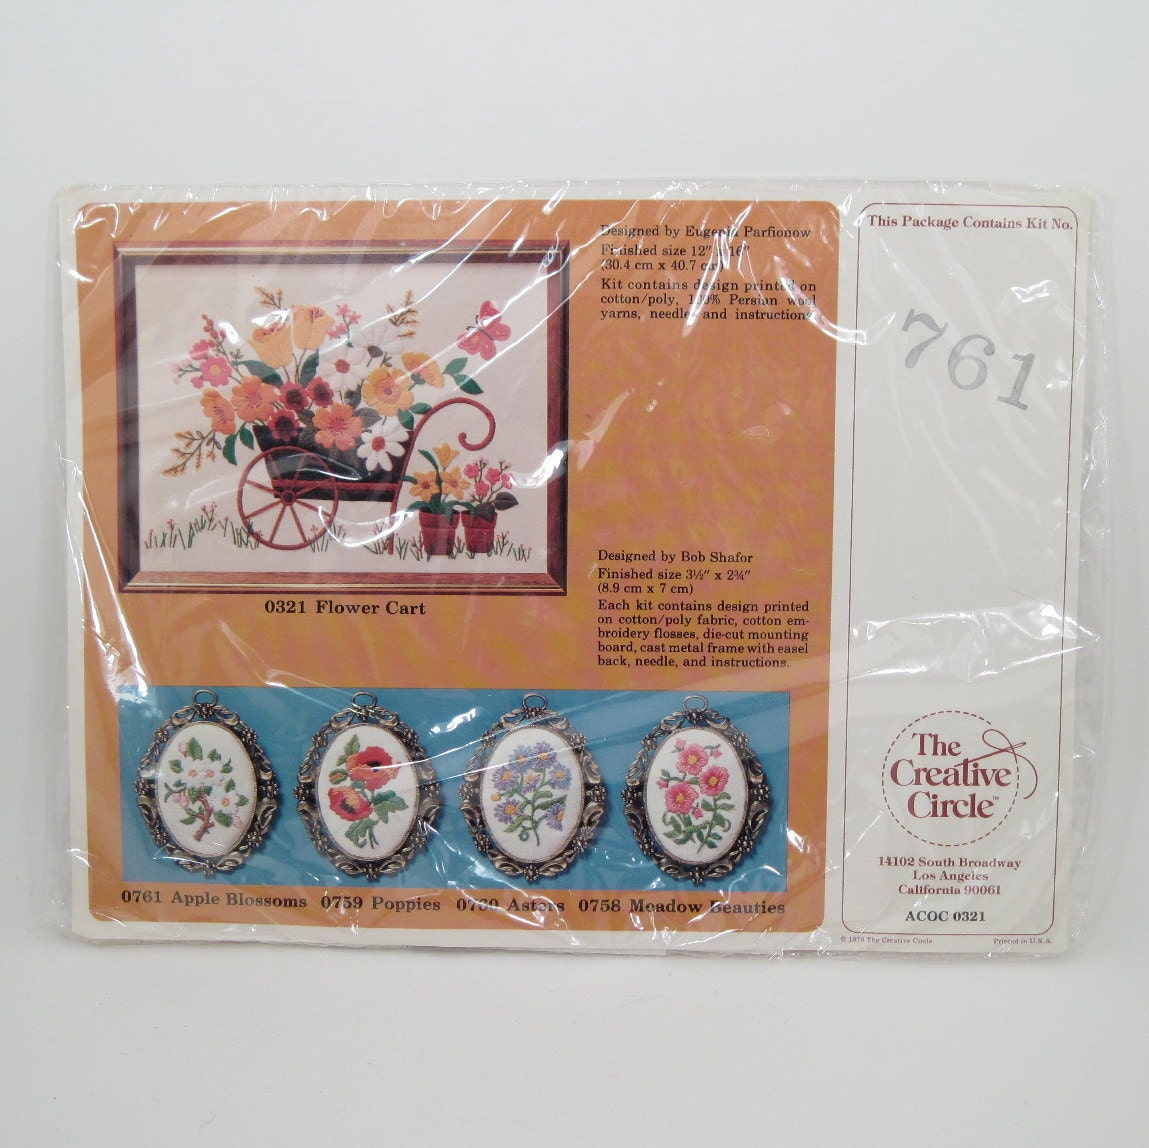 Vintage Crewel Embroidery Kits Set Of 2 Small By ChaosSupplies